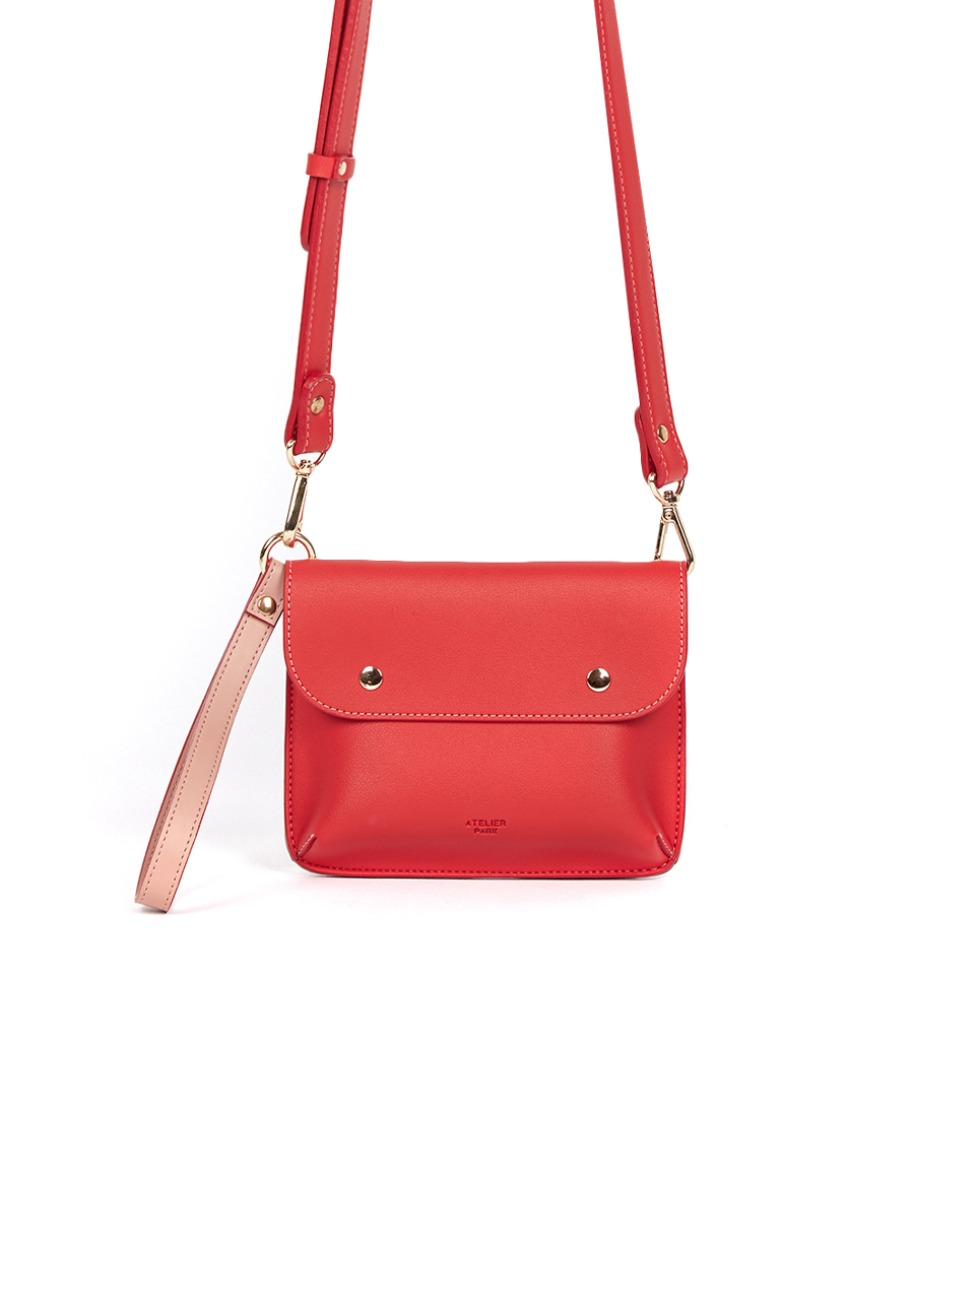 DOUBLE SIDE BAG_RED_8월17일 순차출고